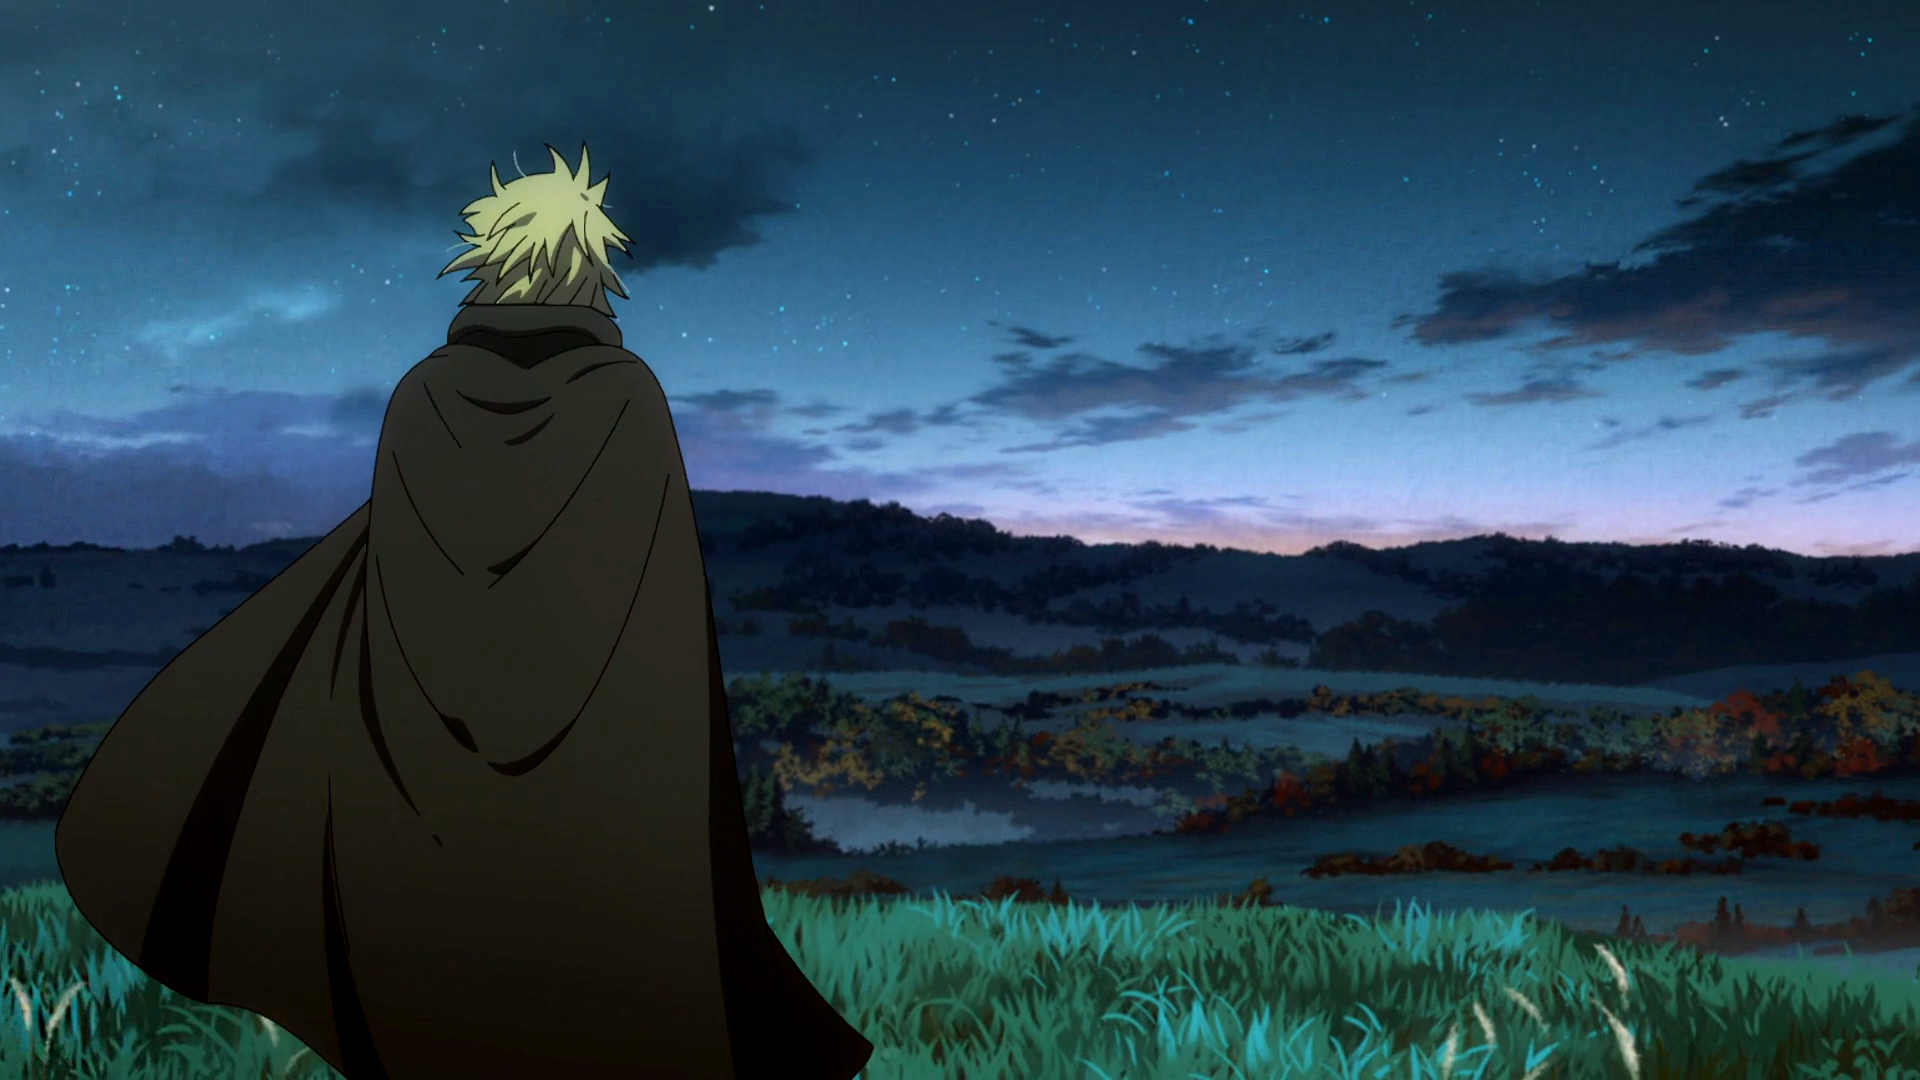 Anime 1920x1080 Vinland Saga landscape dawn sky clouds England anime manga hills trees stars Makoto Yukimura Wit Studio Thorfinn Vikings standing yellow hair alone grass cloaks